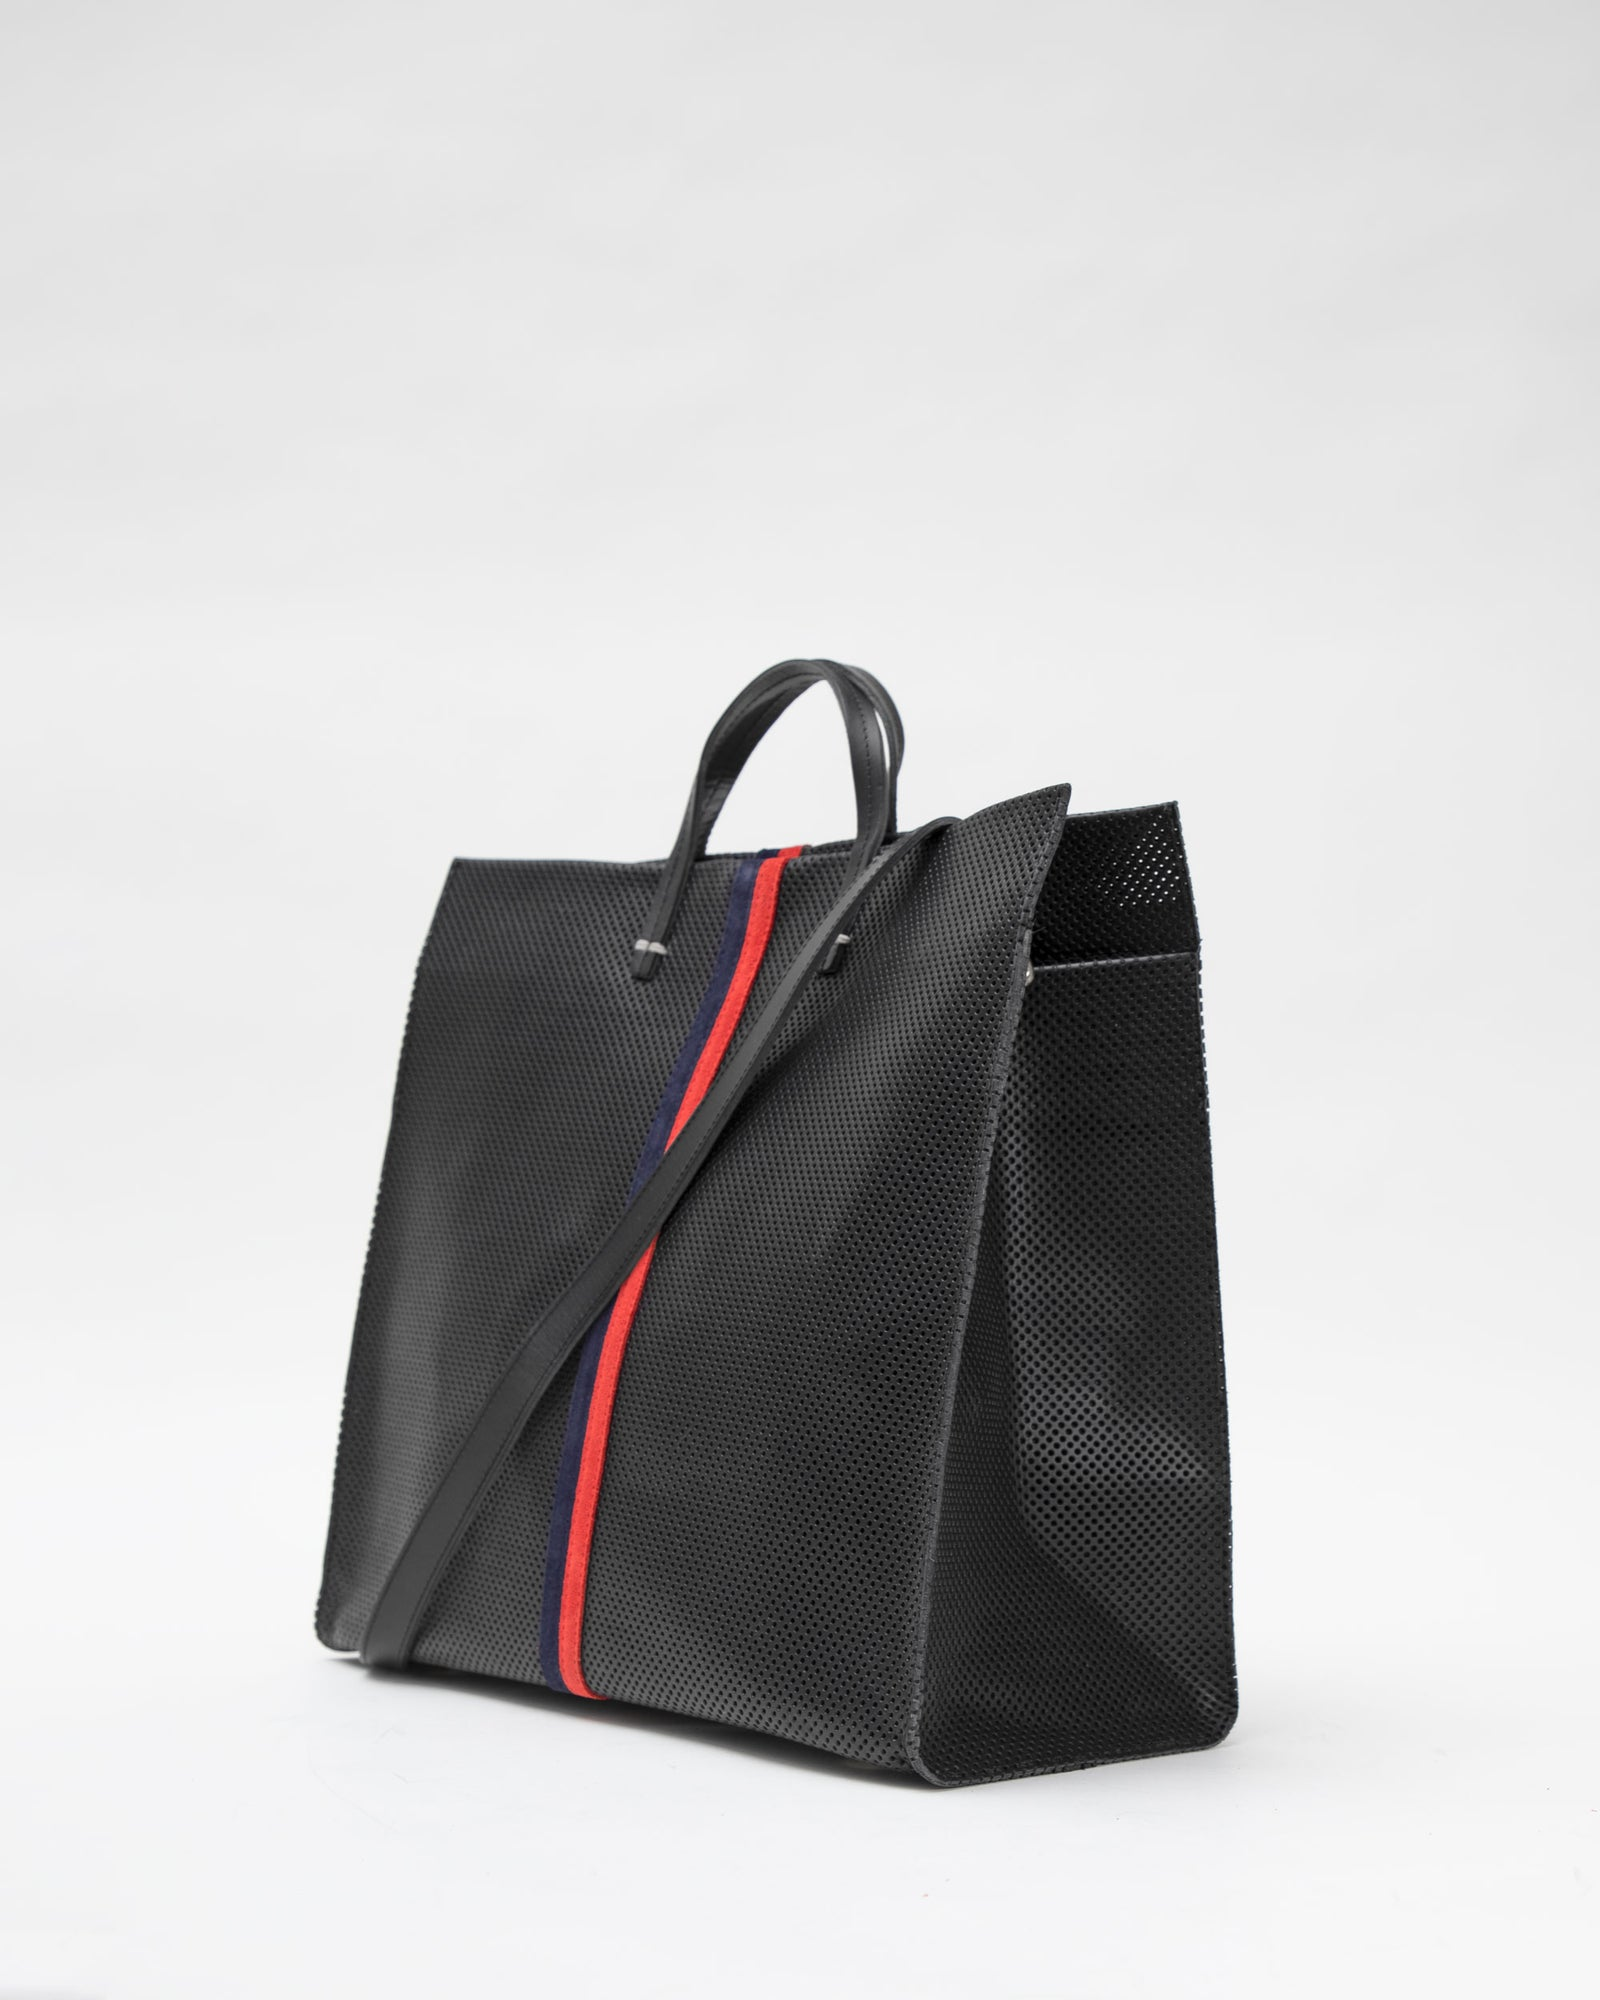 Black Perf with Navy & Red Desert Stripes Simple Tote - Back